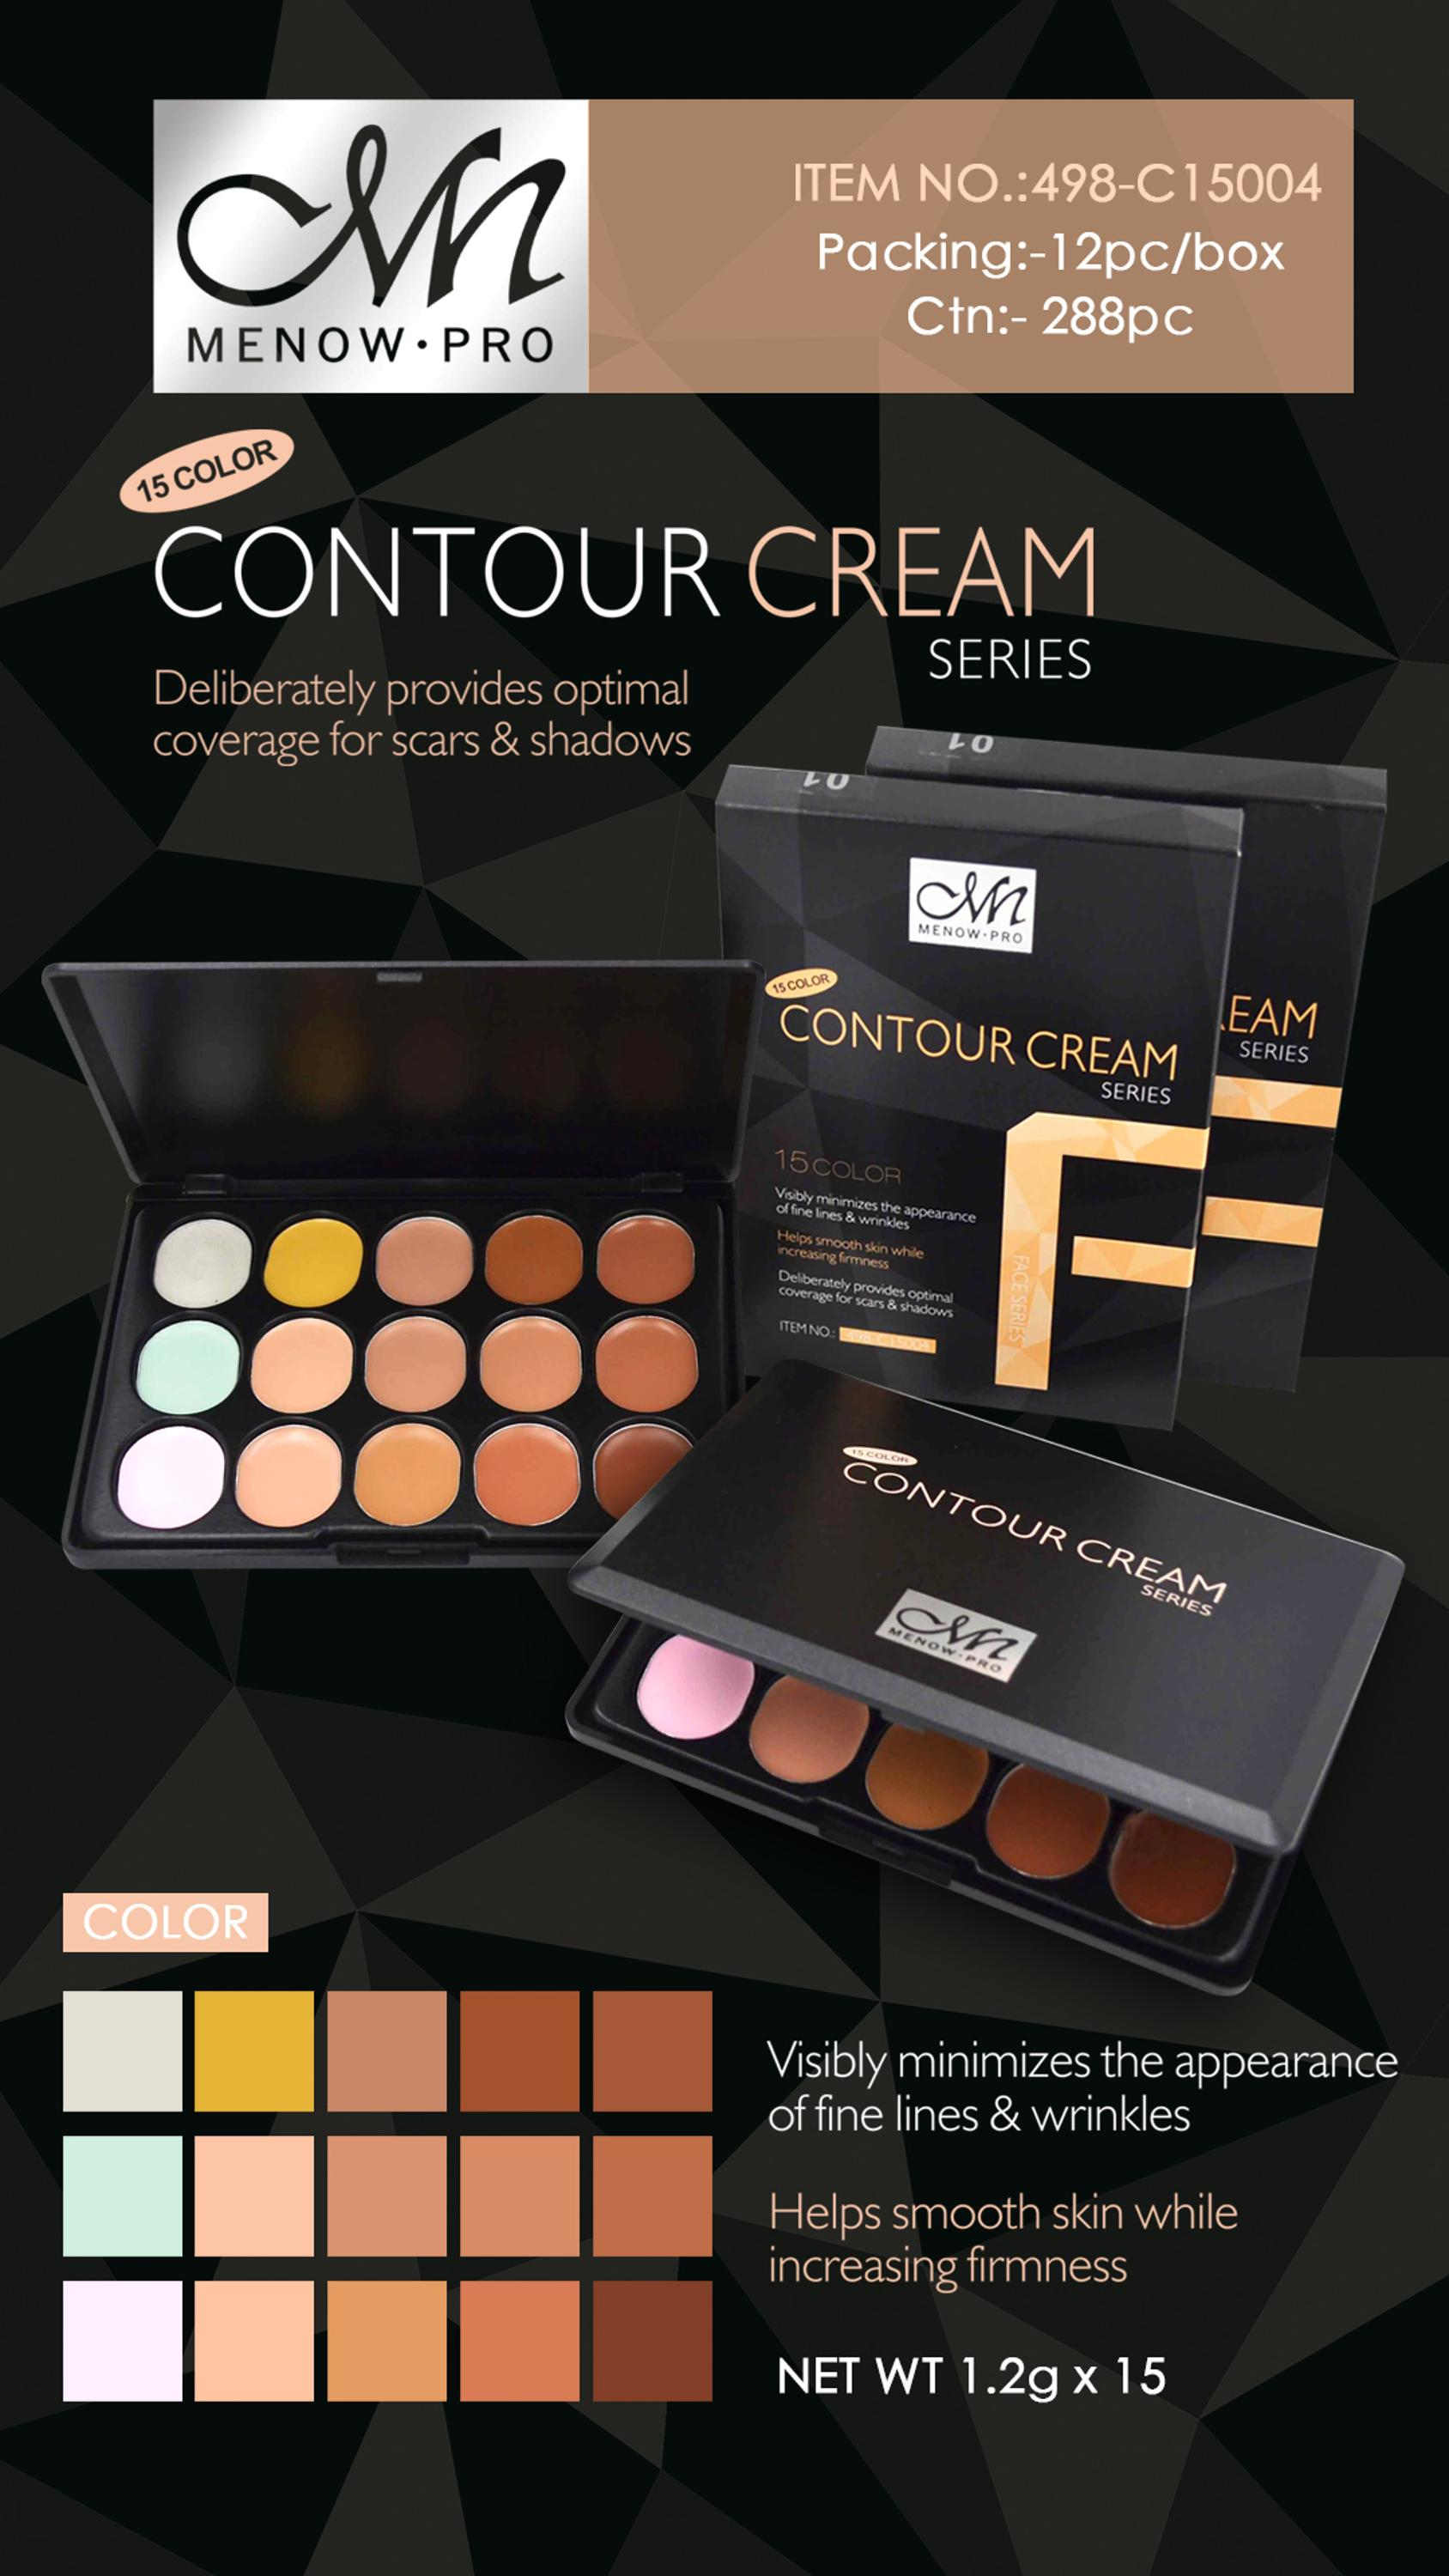 Menow C15004 15 colors Contour Cream Face Makeup Concealer Palette